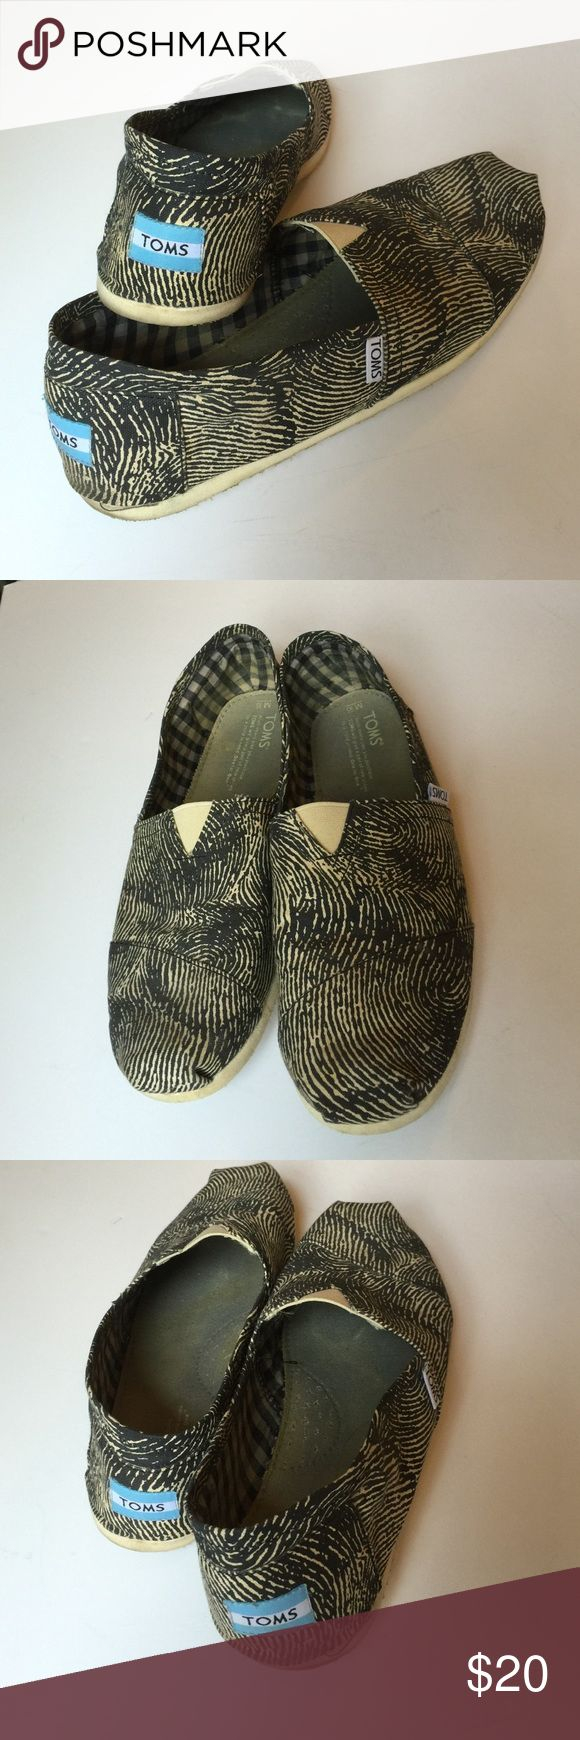 Mens Toms Classic, Fingerprint Design slightly worn, good condition. Make offer TOMS Shoes Loafers & Slip-Ons